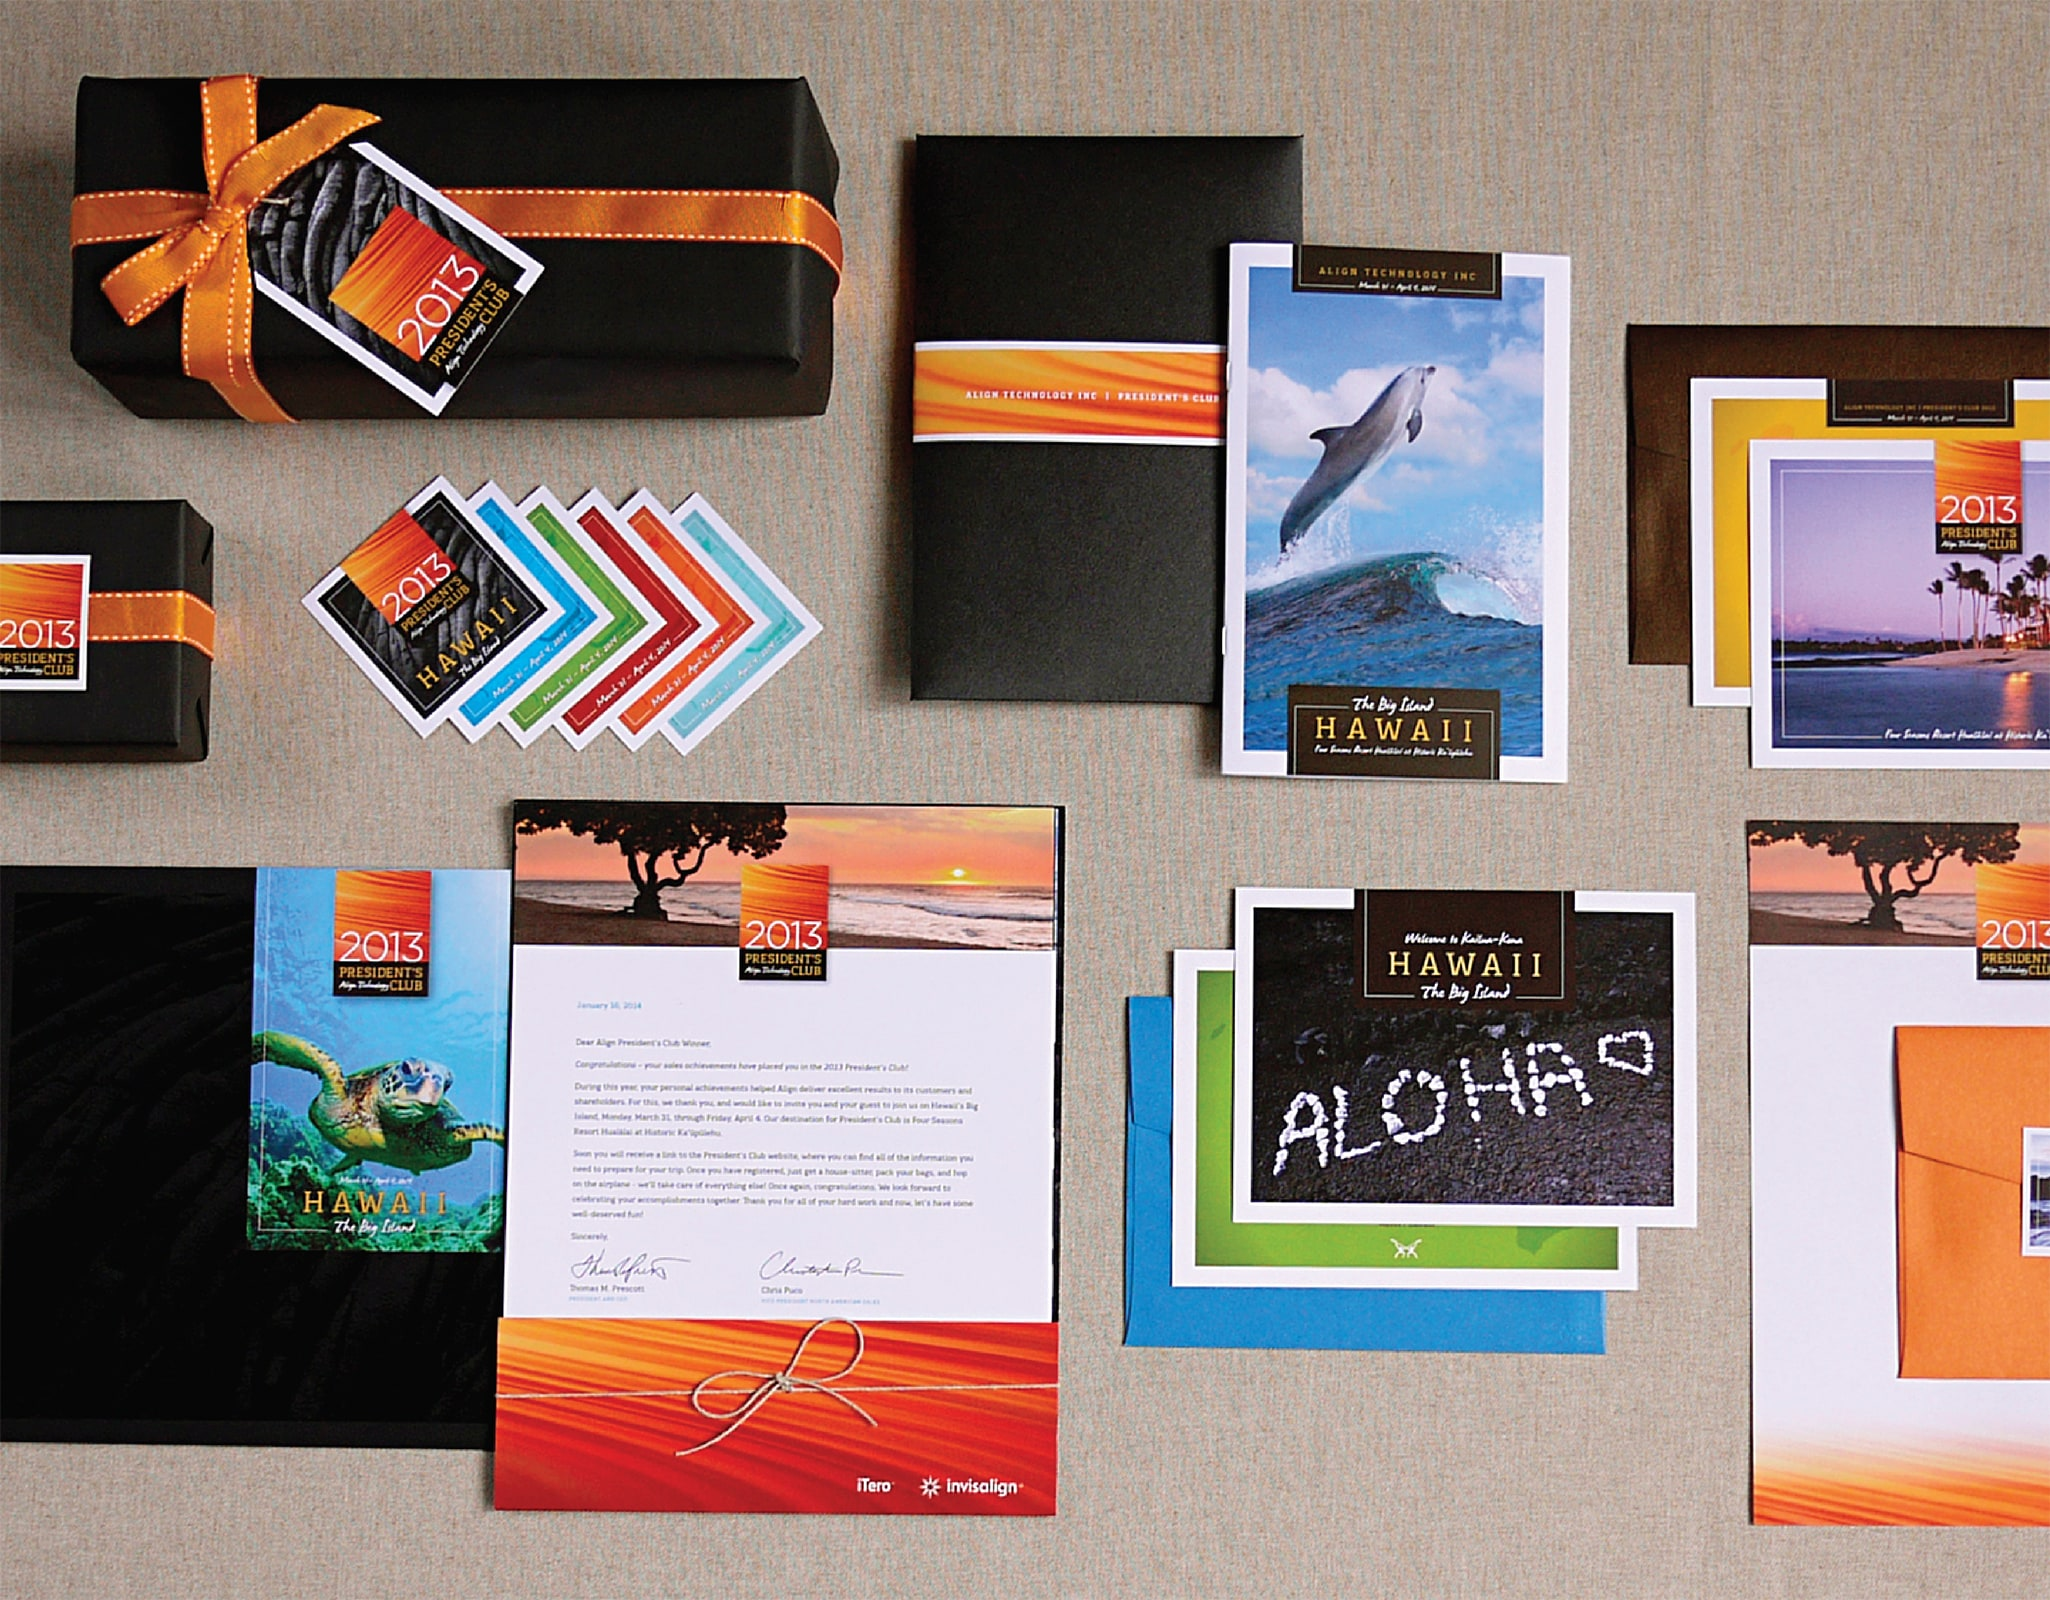 Photograph of event materials from Align Technology President's Club 2013